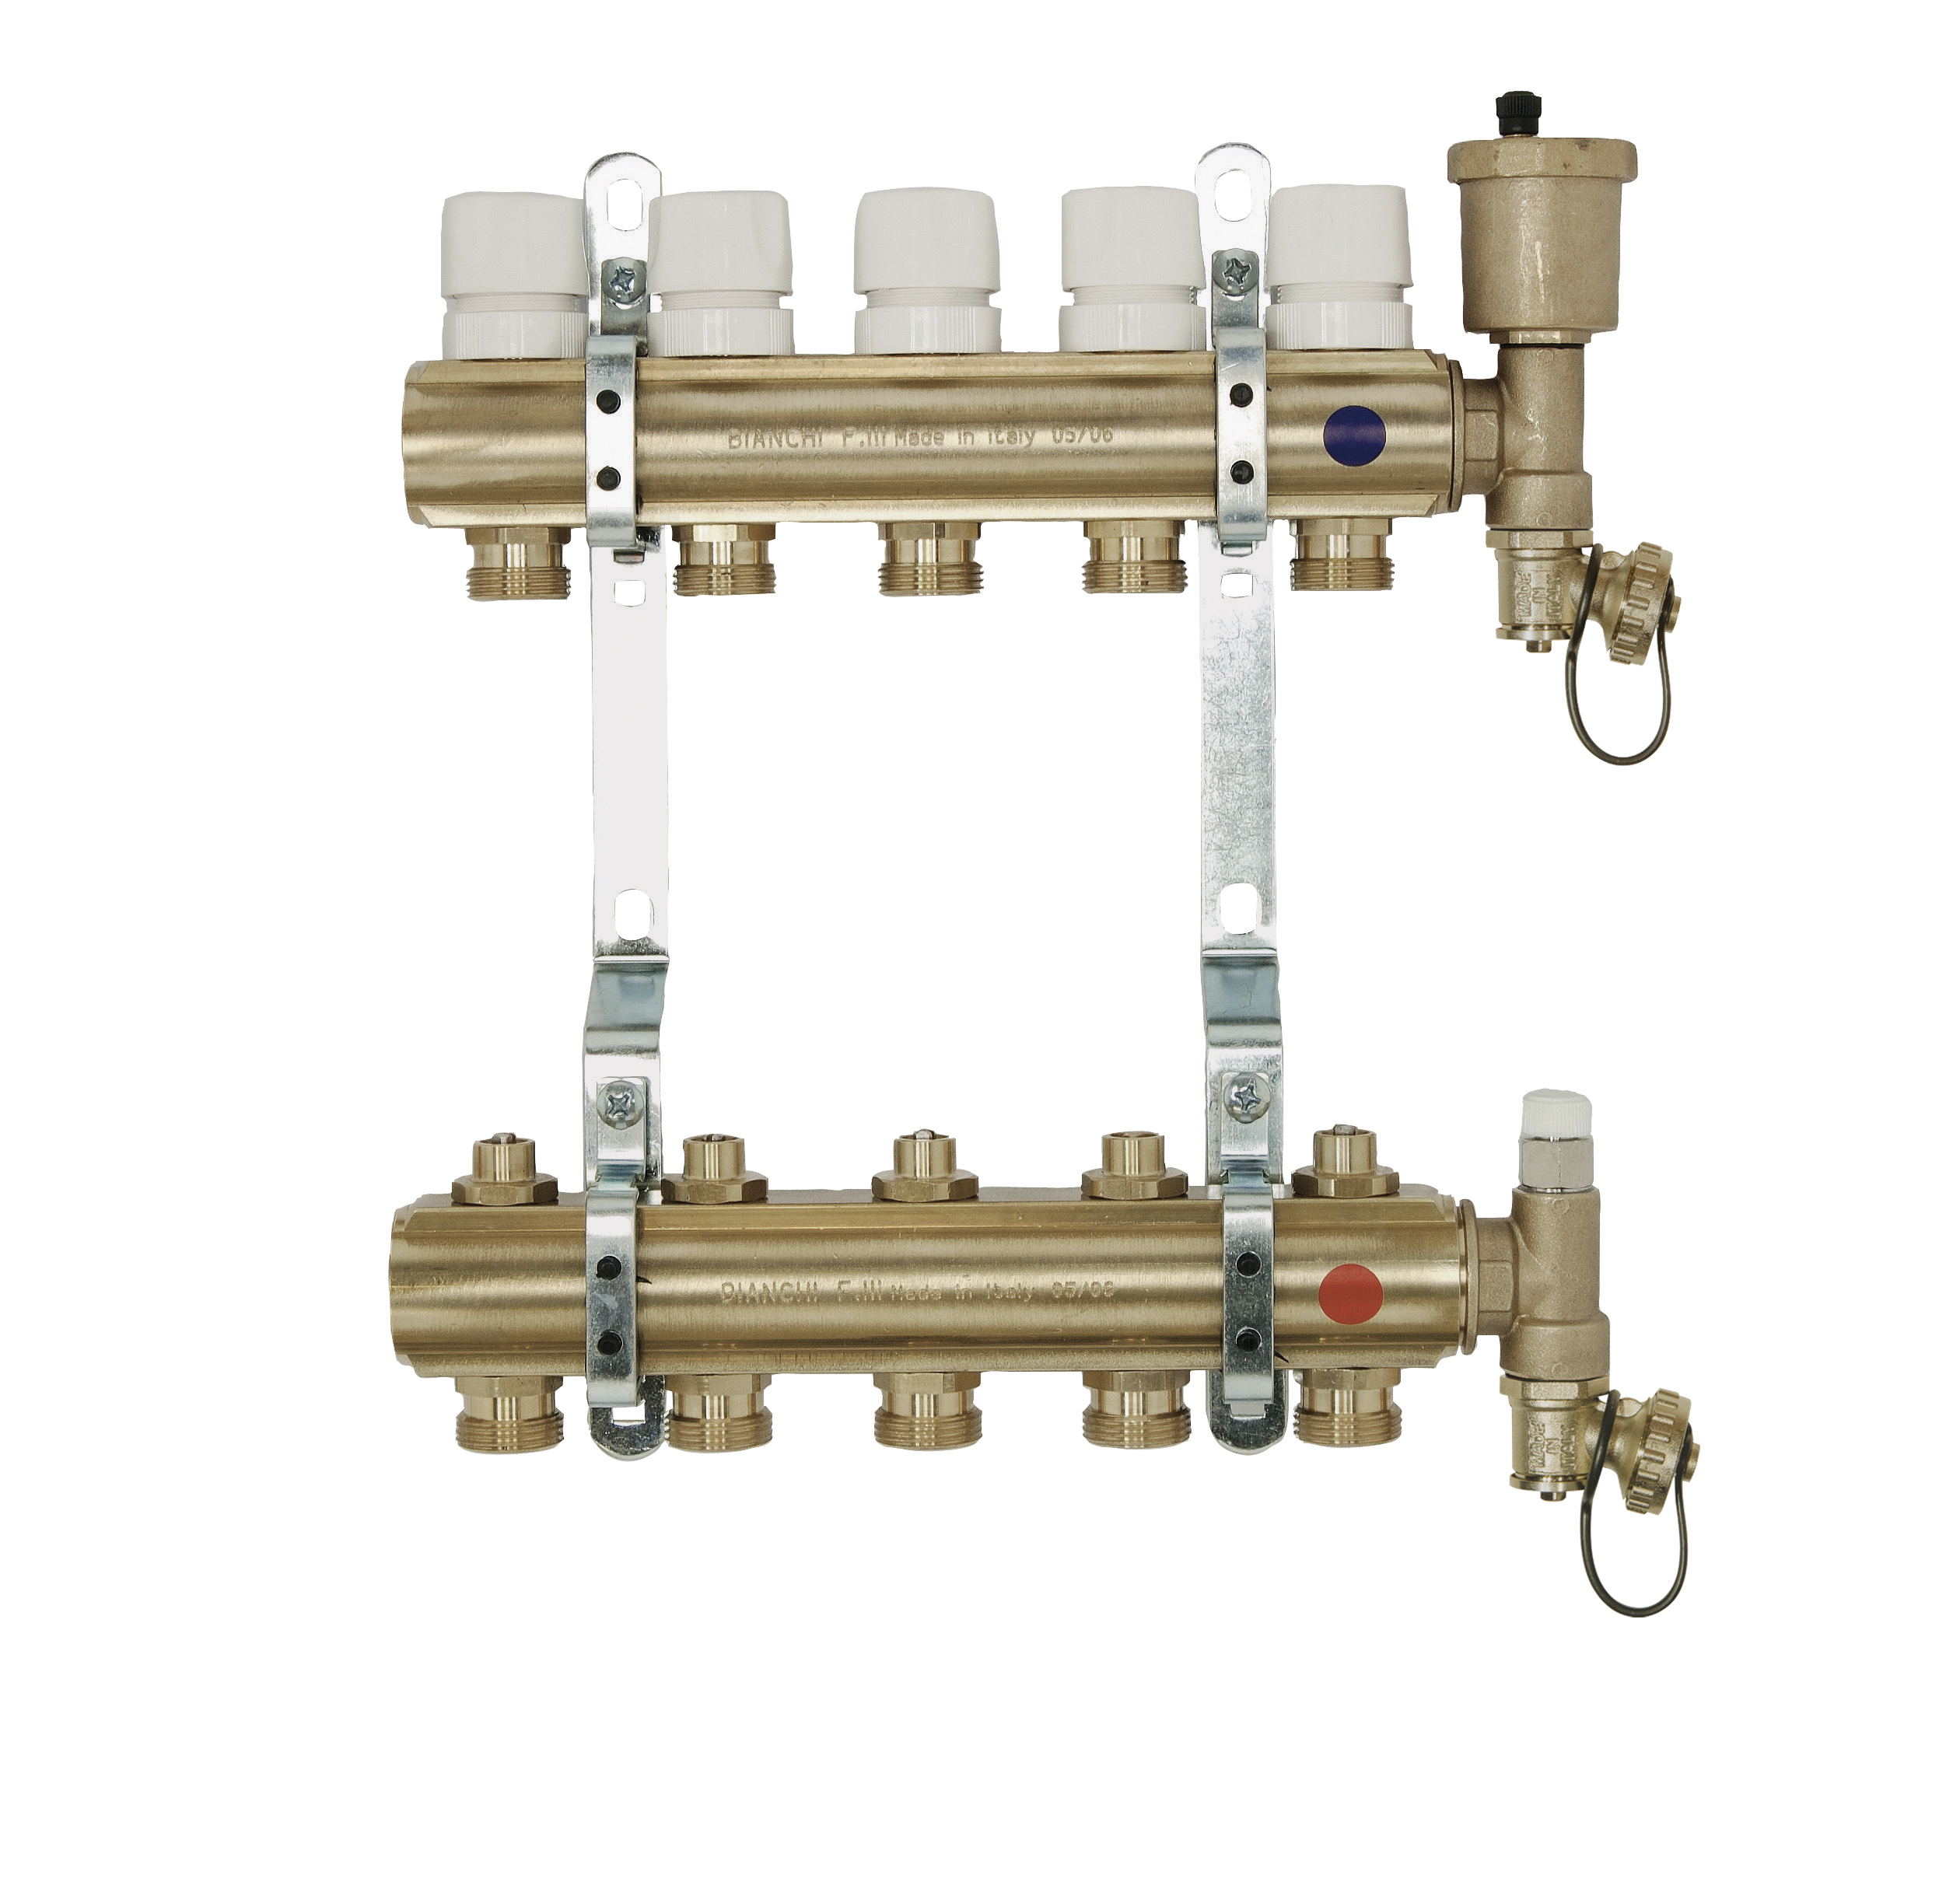 Brass manifolds therm. valves and lockshield and discharge